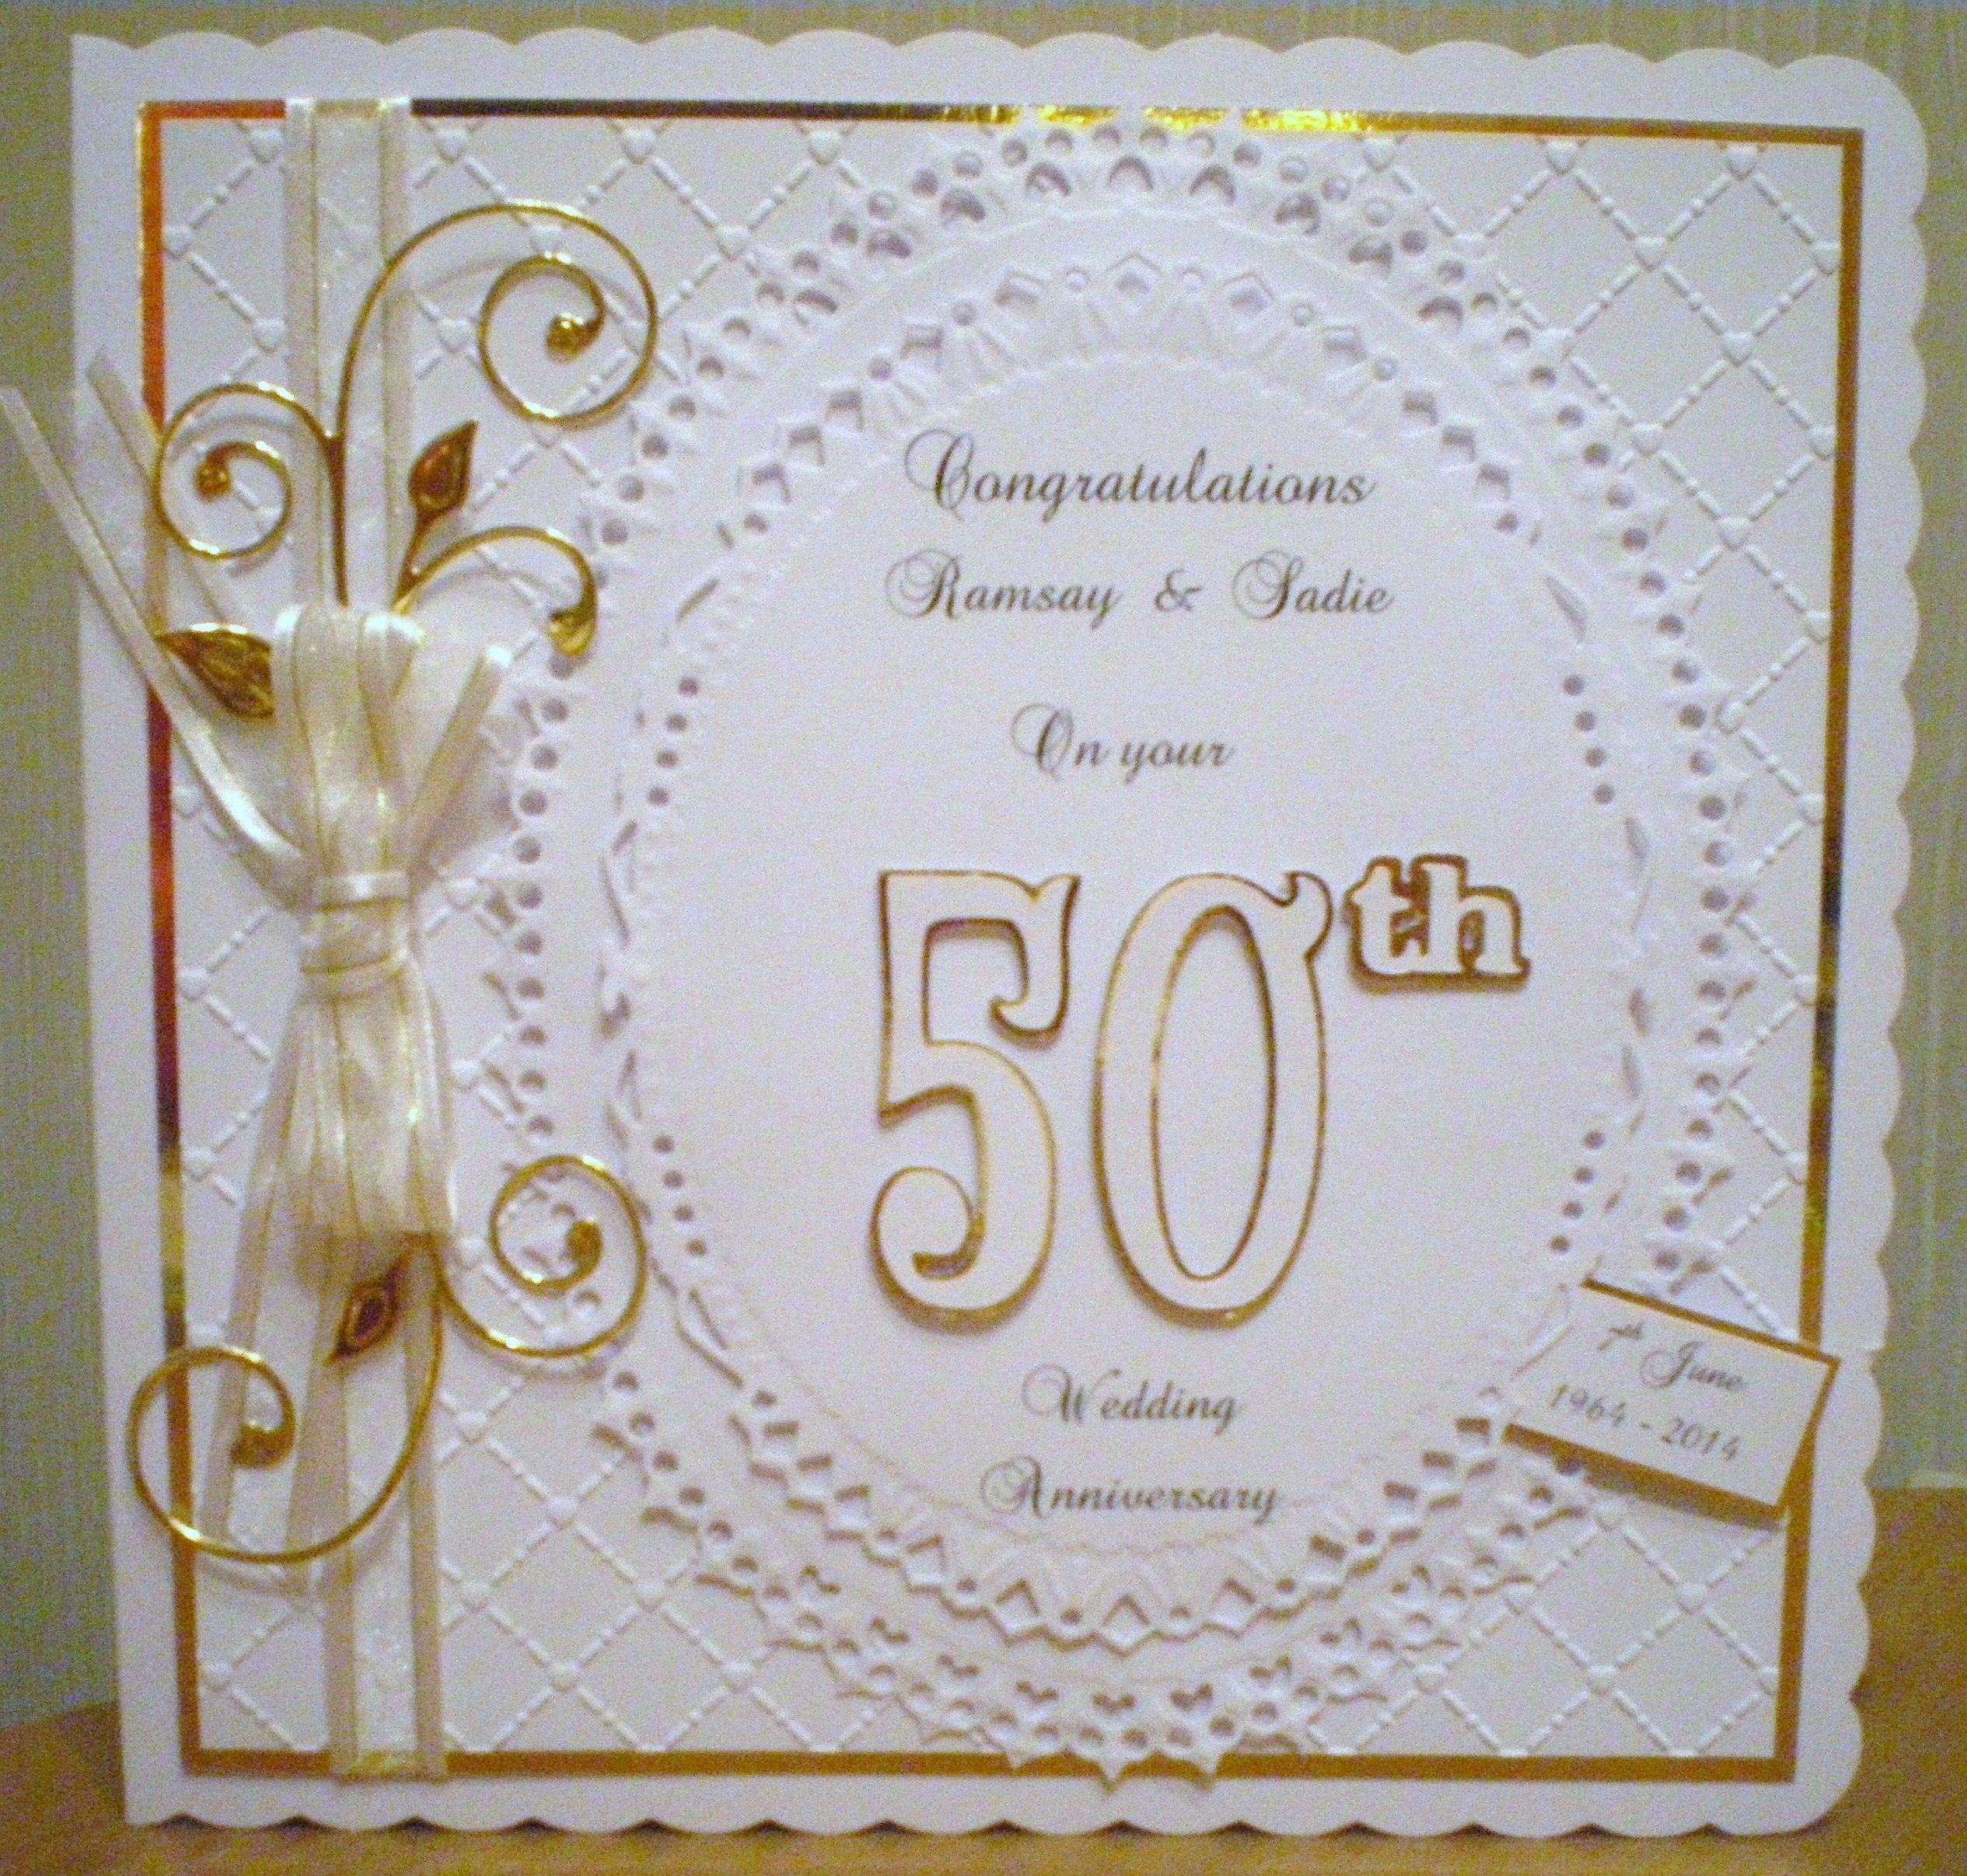 handmade wedding cards ireland%0A Golden Wedding Anniversary